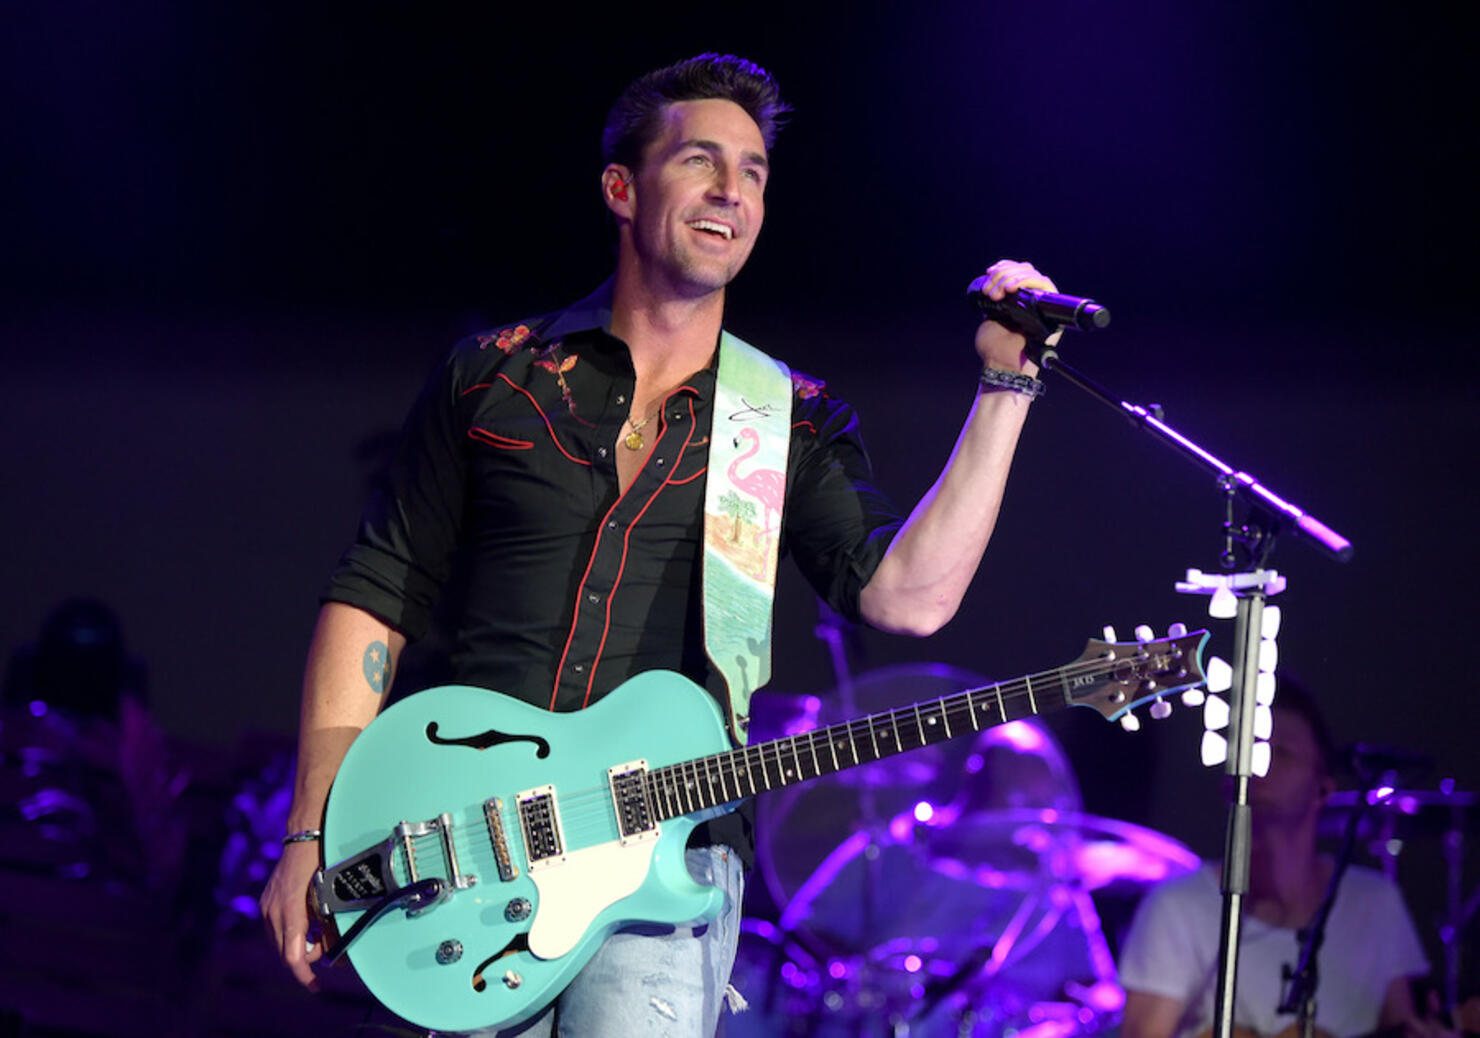 2018 Stagecoach California's Country Music Festival - Day 1